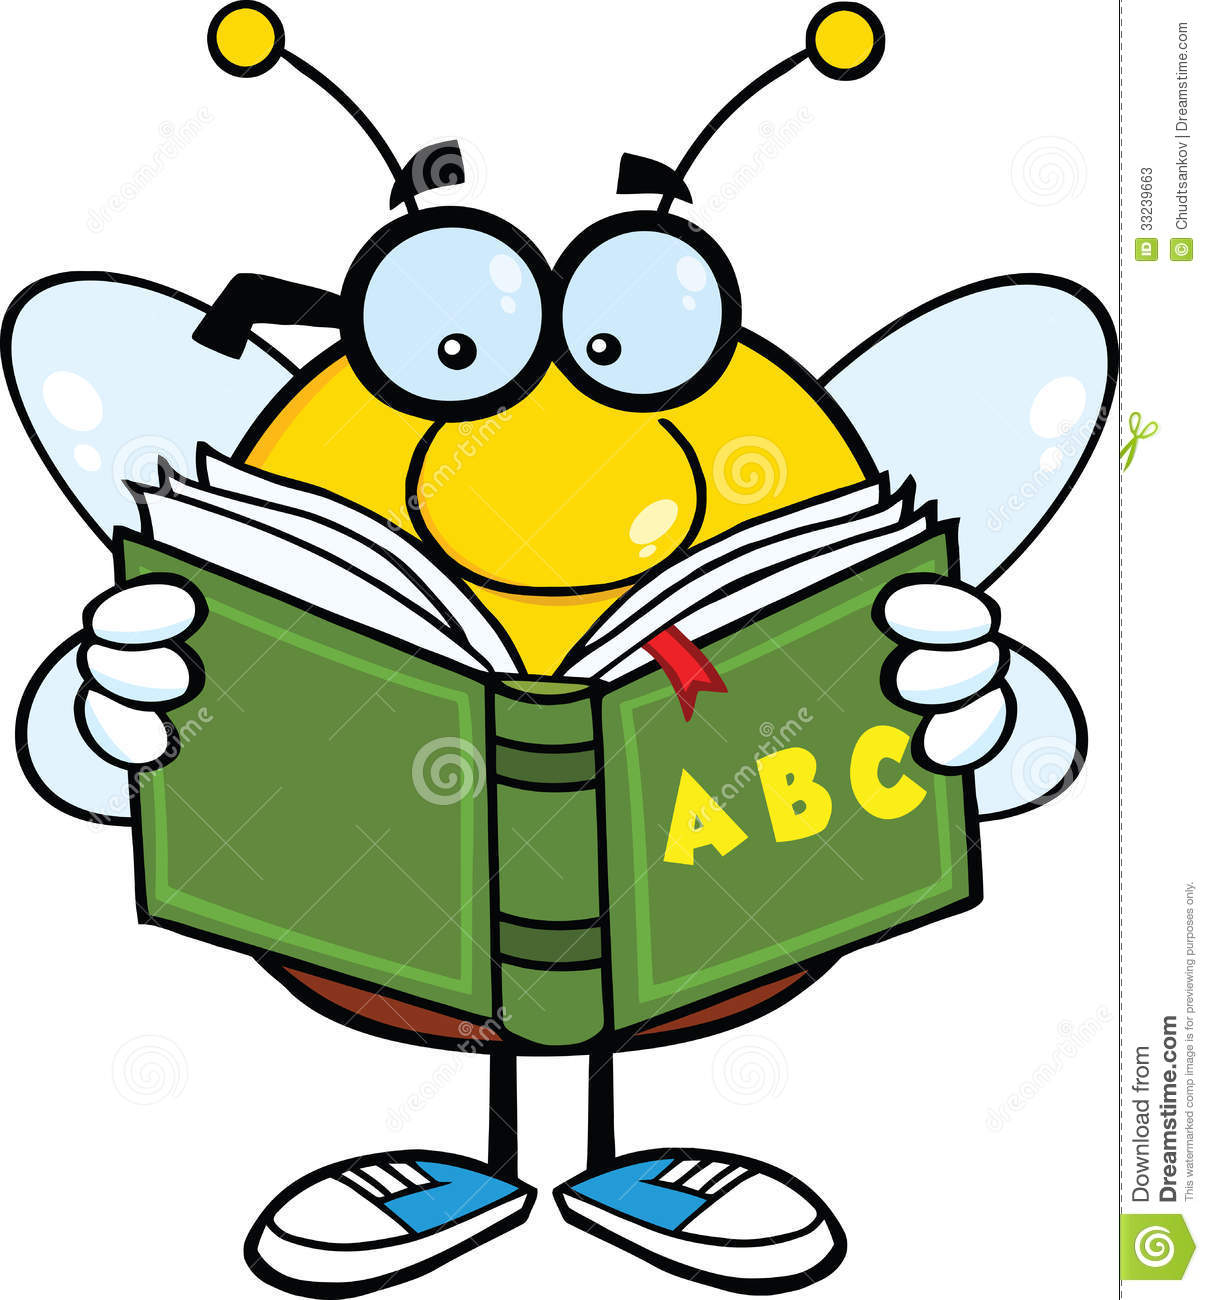 Pudgy Bee Cartoon Character With Glasses Reading A ABC Book Stock ...